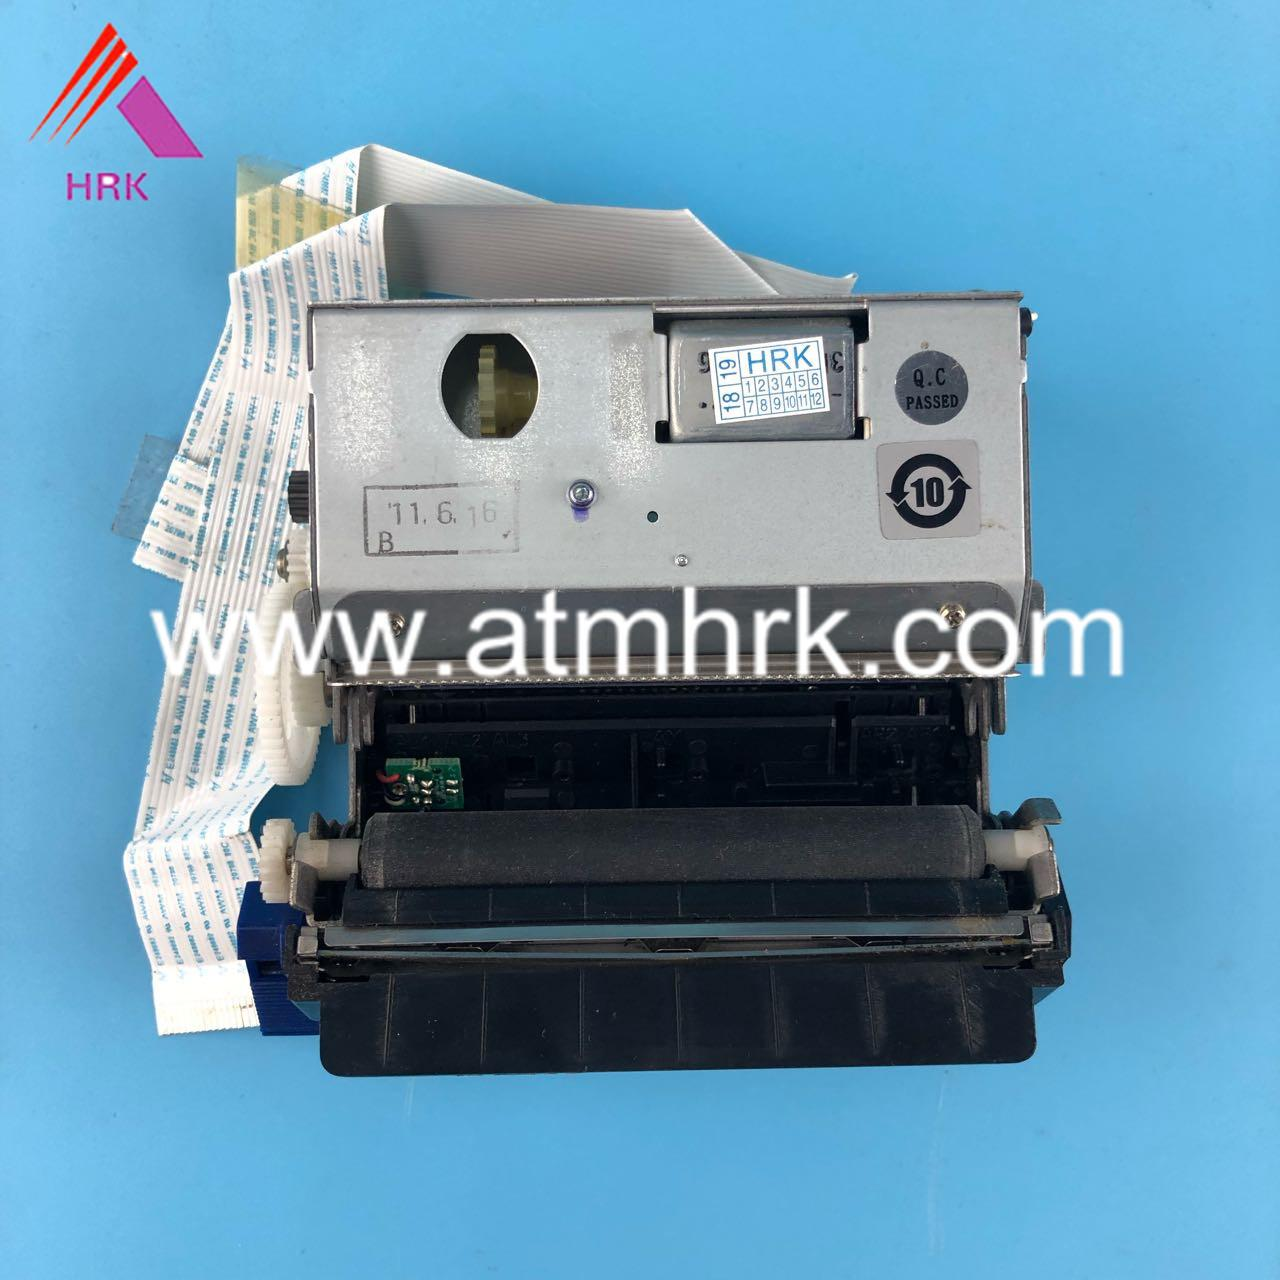 Wholesale High Stability GRG ATM Parts GRG TRP - 003R Print Head Simple Maintenance from china suppliers